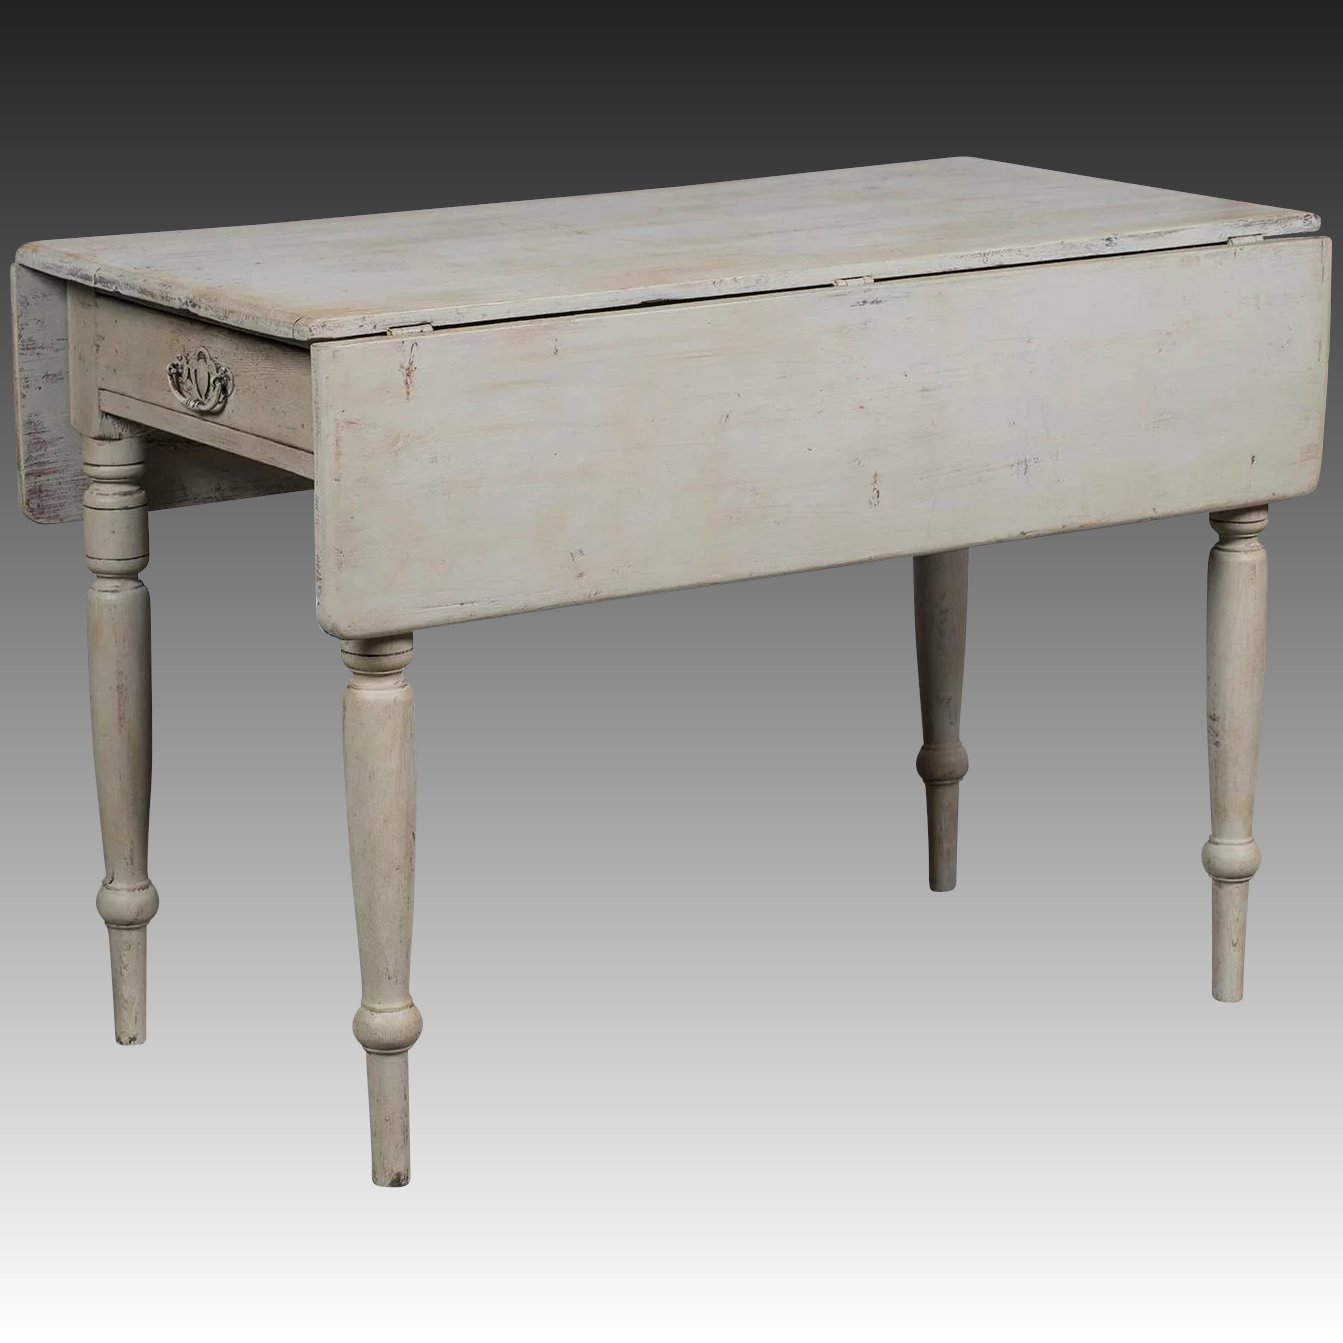 Antique English Painted Drop Leaf Table Circa 1875 Carl